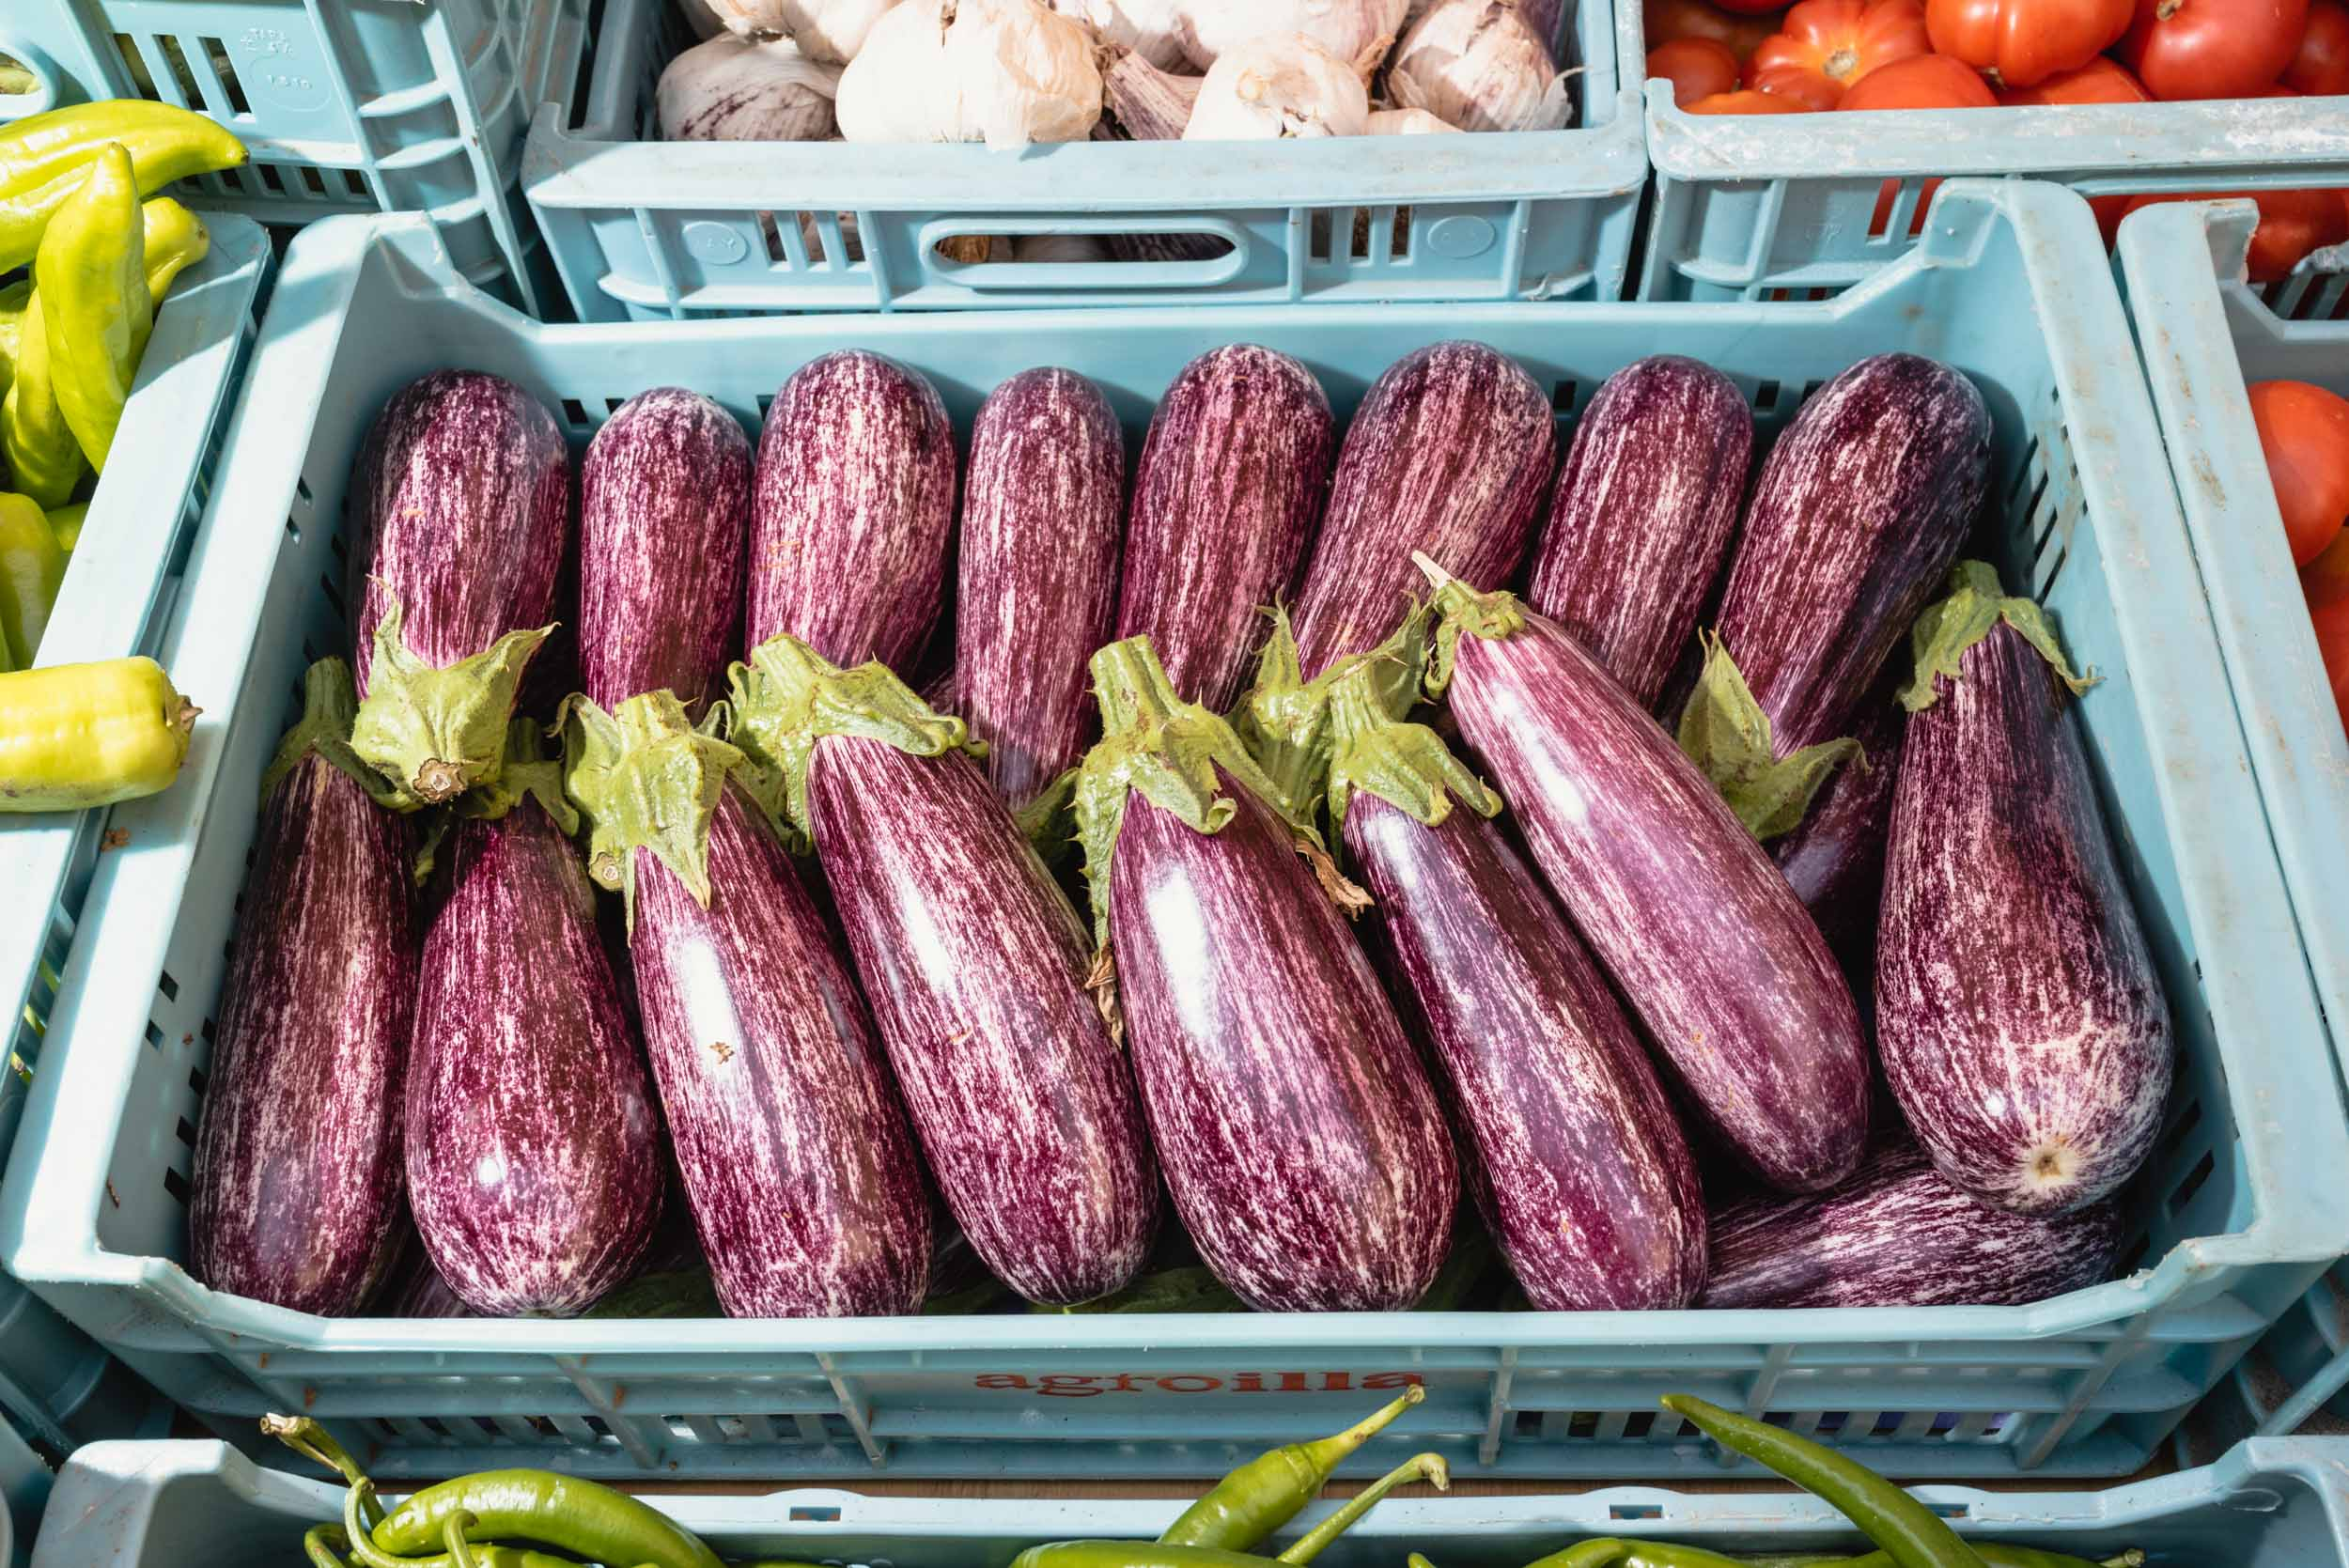 Purple eggplants for sale in Sineu, Spain